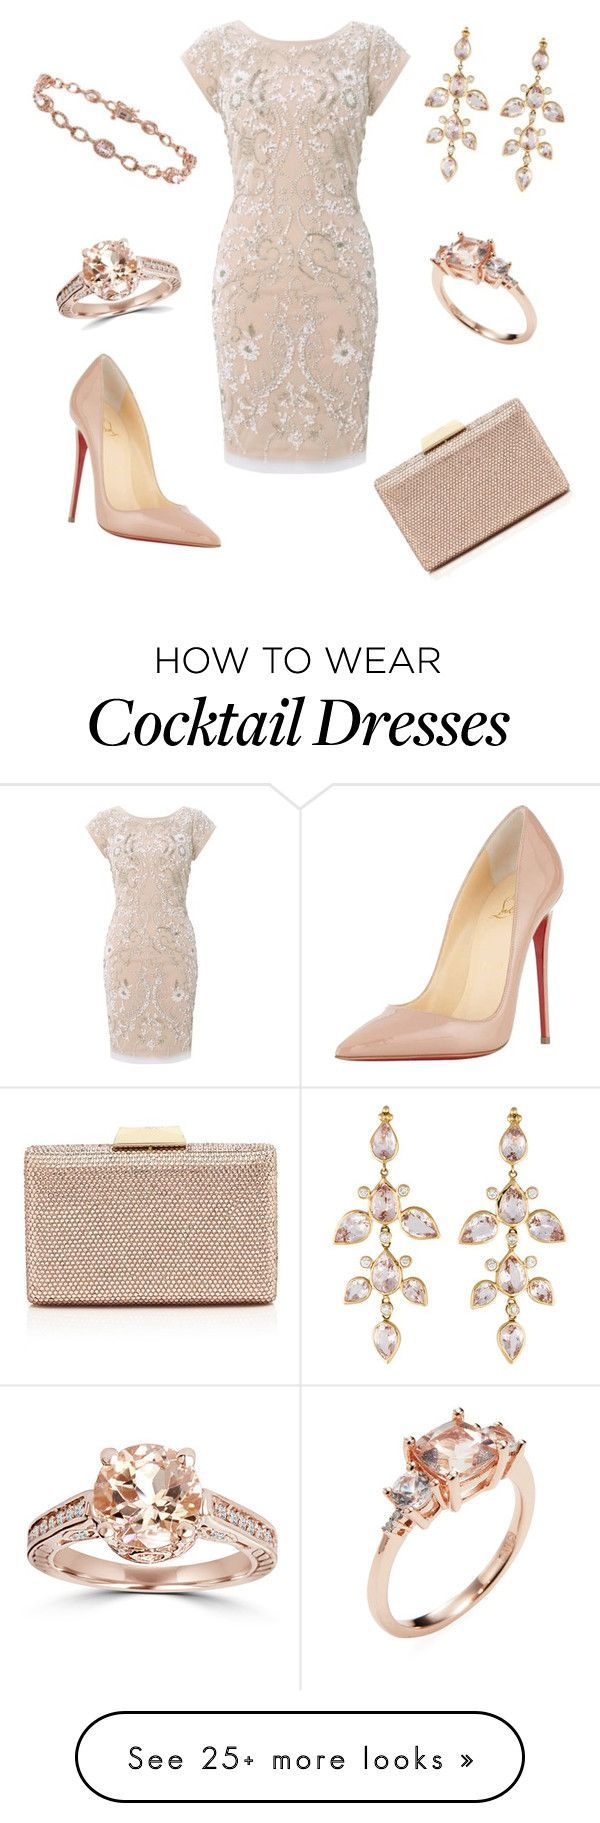 """At the Ballet"" by nmccullough on Polyvore featuring Aidan Mattox, Christian Louboutin, Sasha, Bliss Diamond, Rina Limor, women's clothing, women, female, woman and misses"